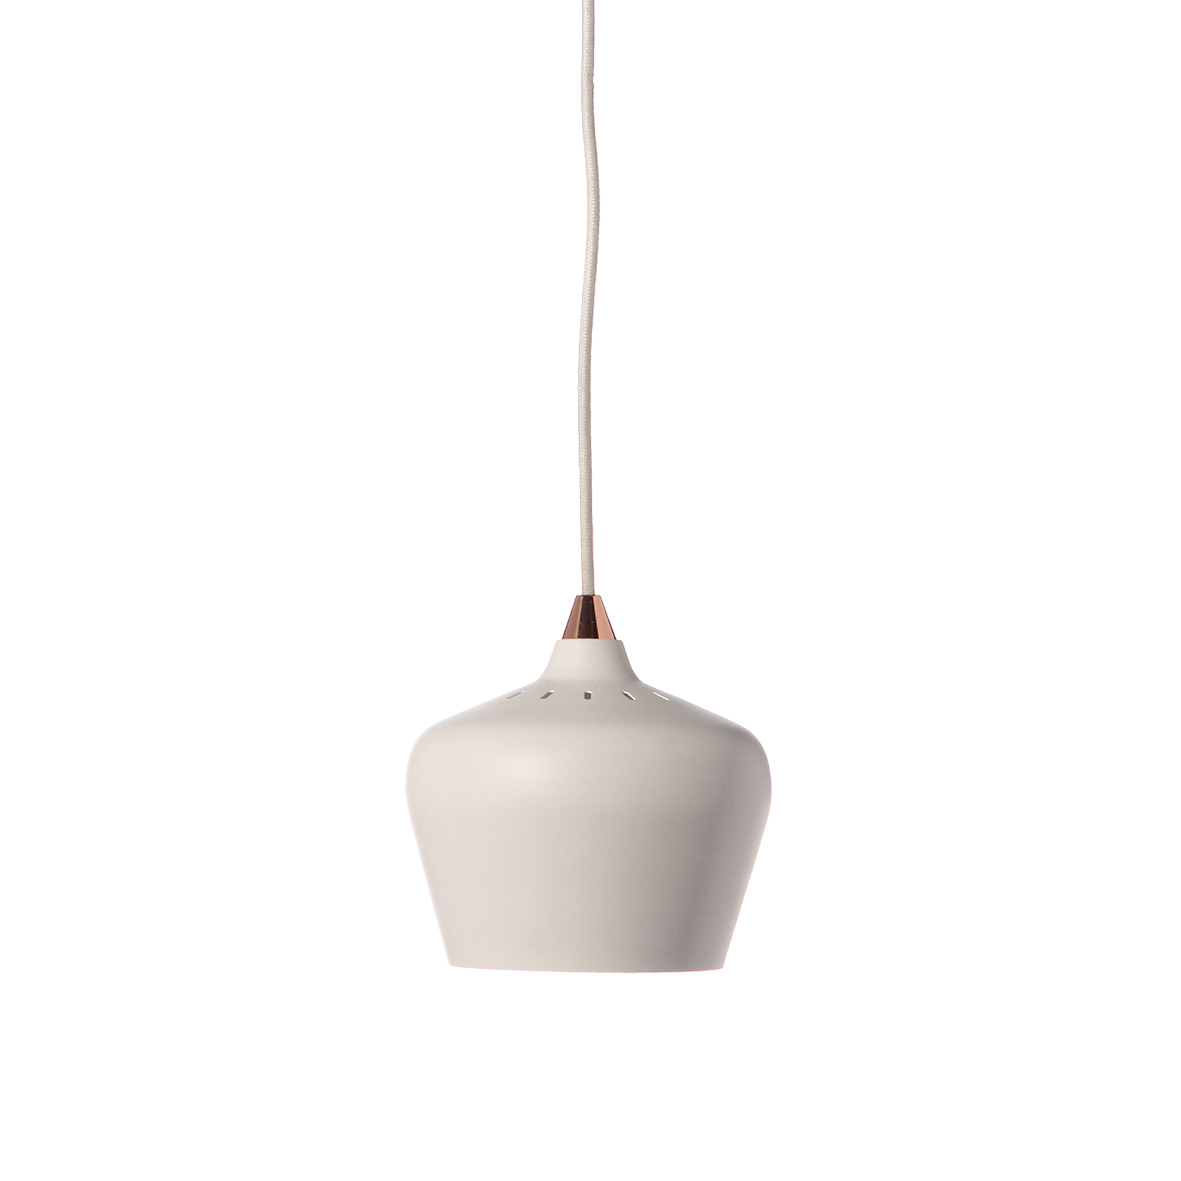 Lustra Cohen Small White Matt, Ø 16 cm